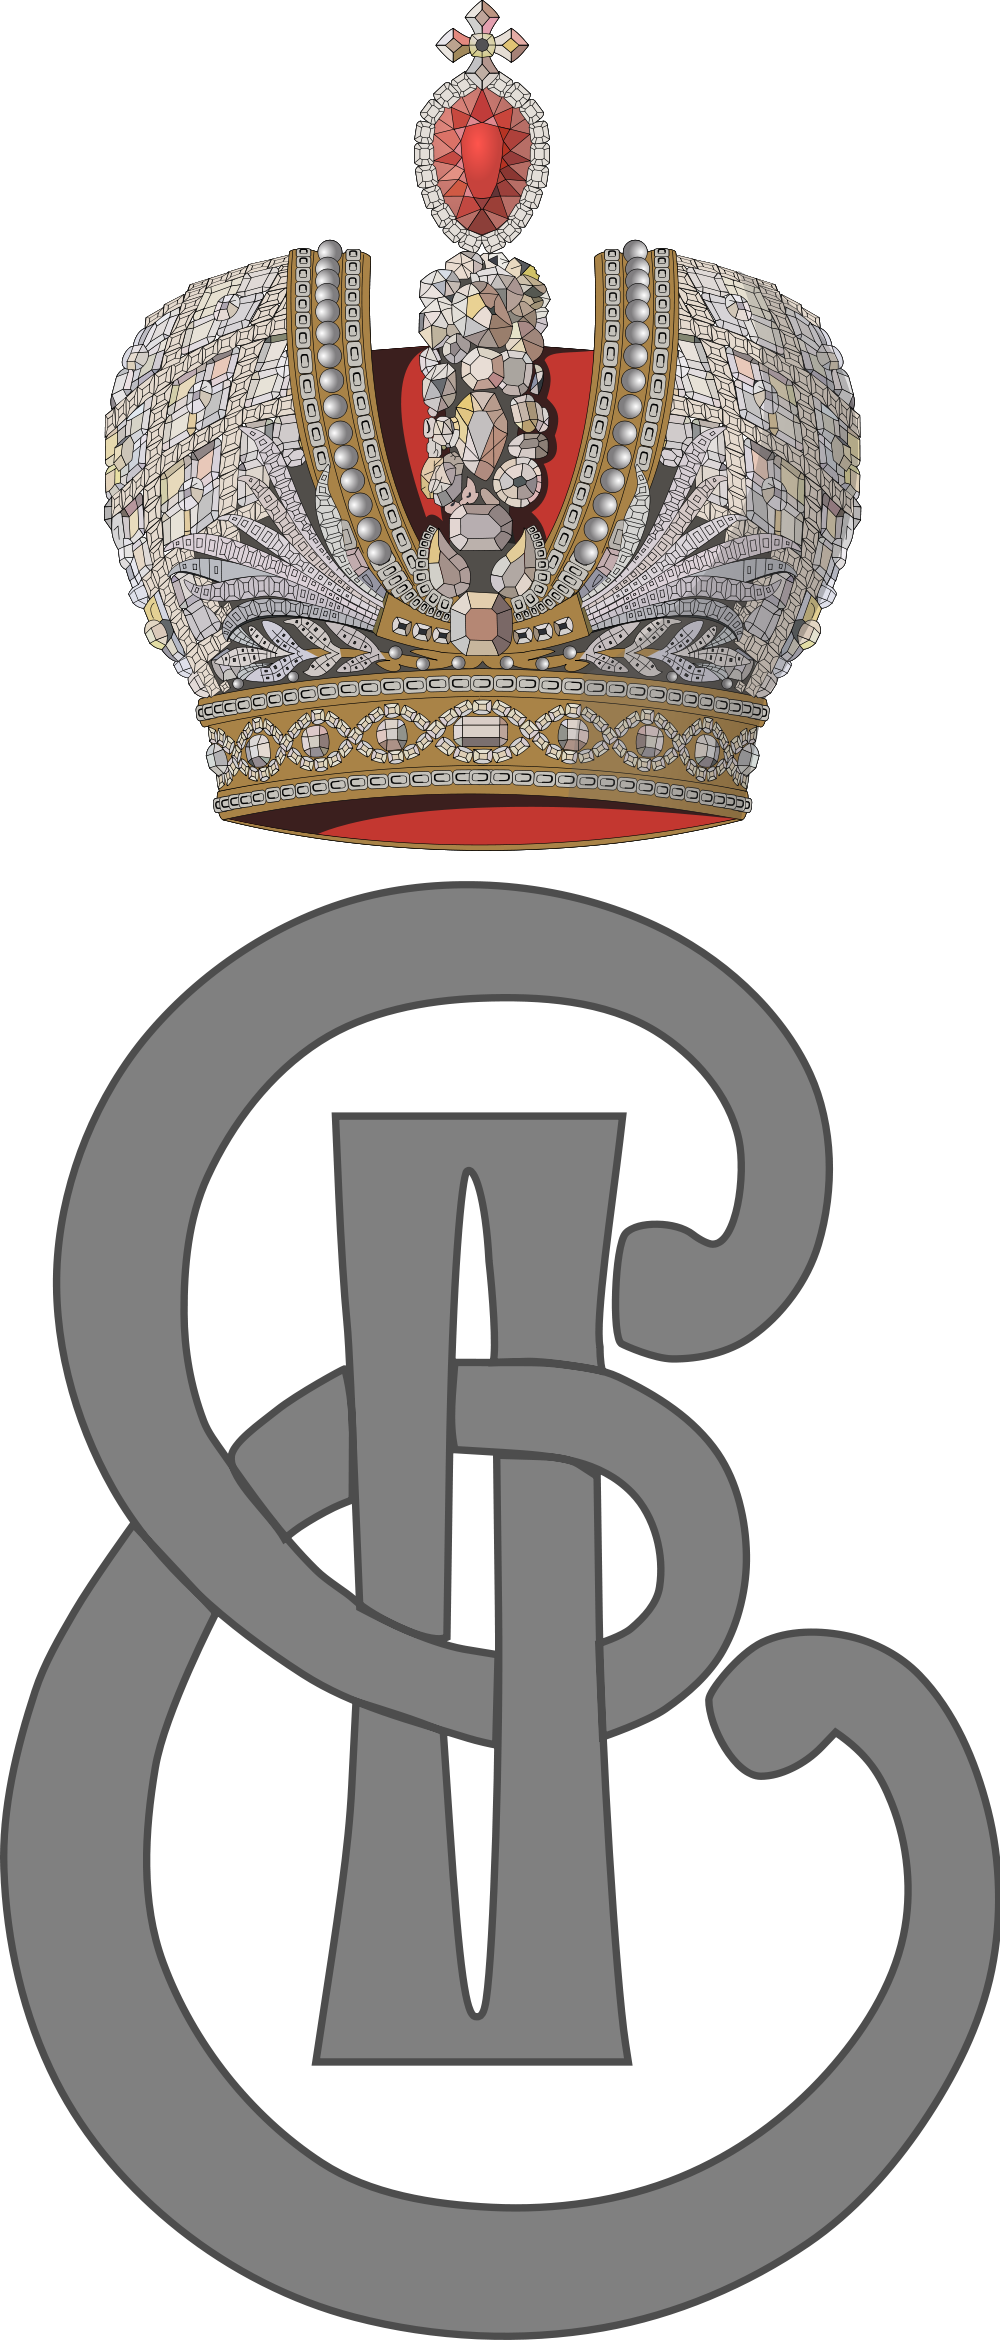 File:Imperial Monogram Of Empress Catherine The Great Of Russia.